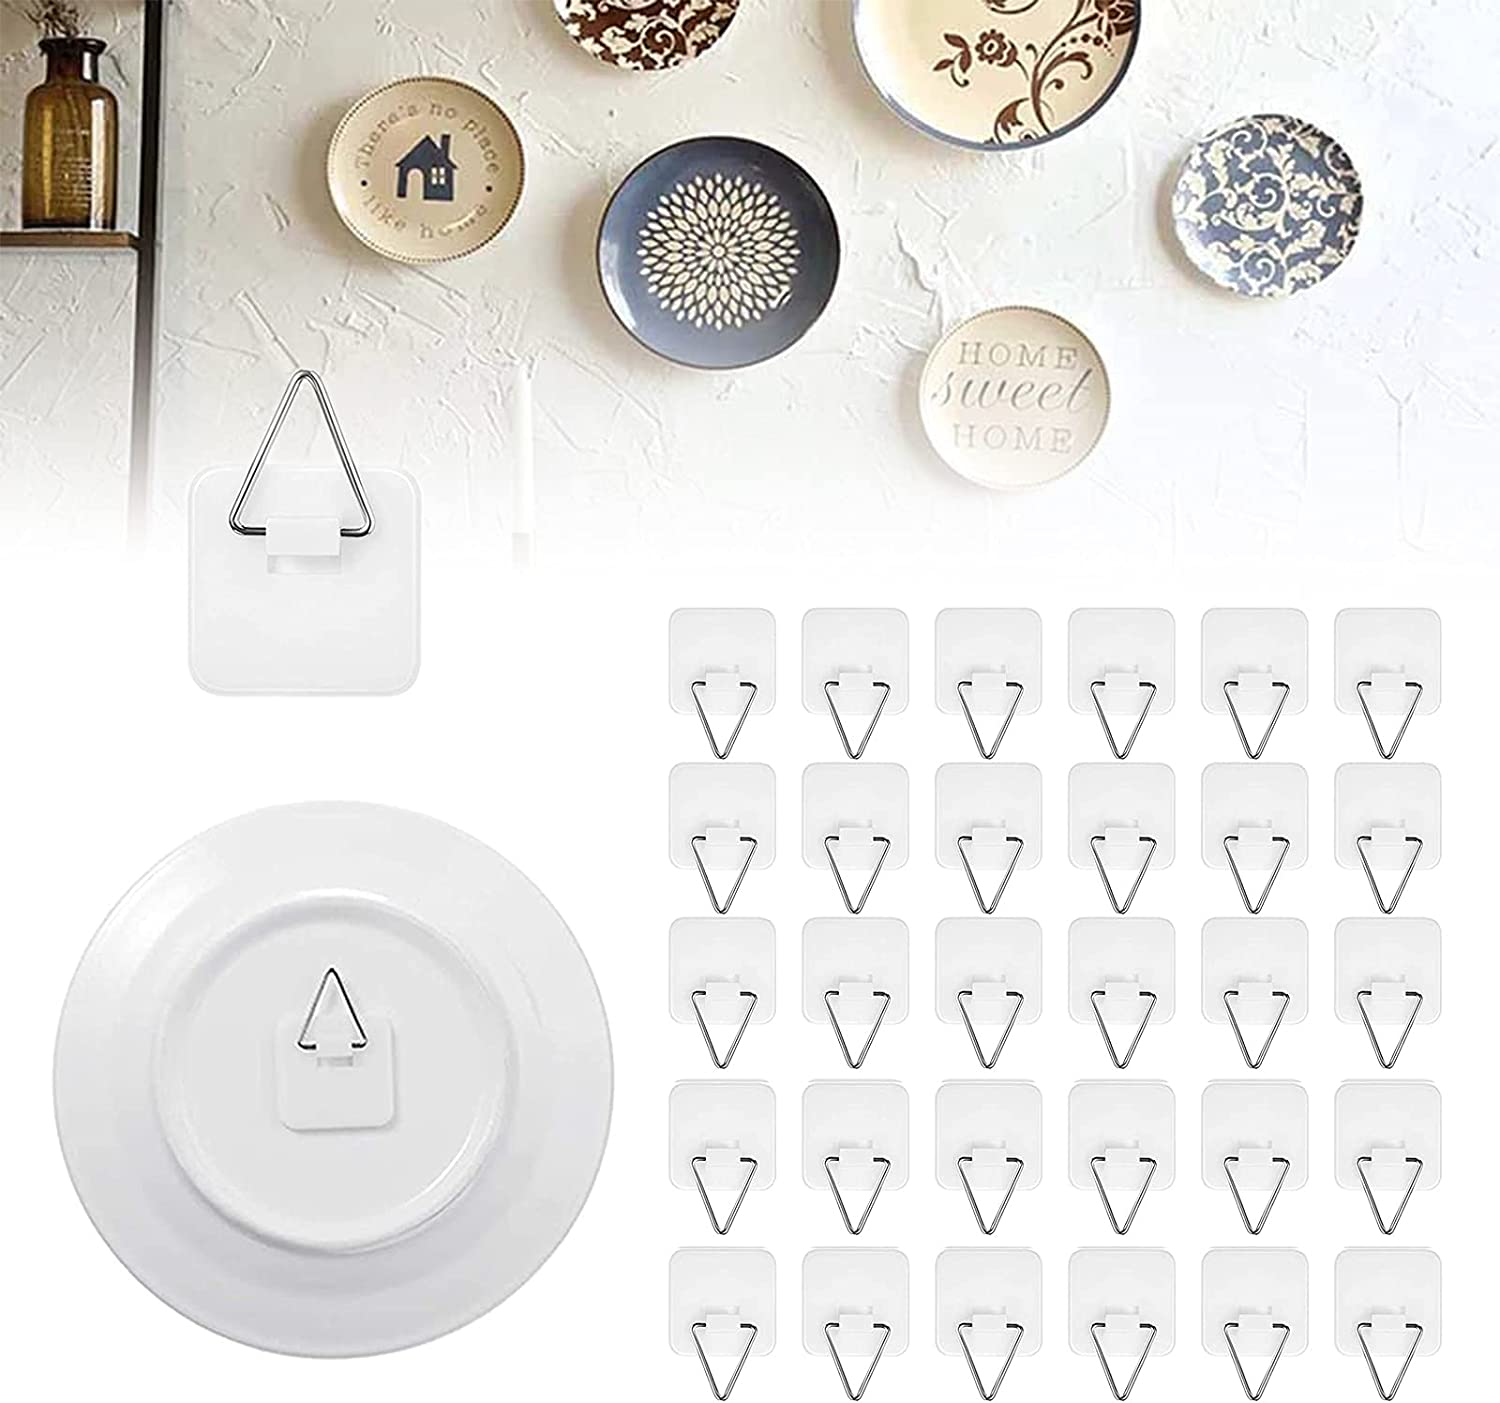 50 Packs Invisible Plate Hanger for the Wall,1.25 Inch Adhesive Plate Wall Hangers, Vertical Wall Plate Holder for Hanging Picture, Plate, Photo, Frames, Home Wall Art Decor Supplies Without Nails